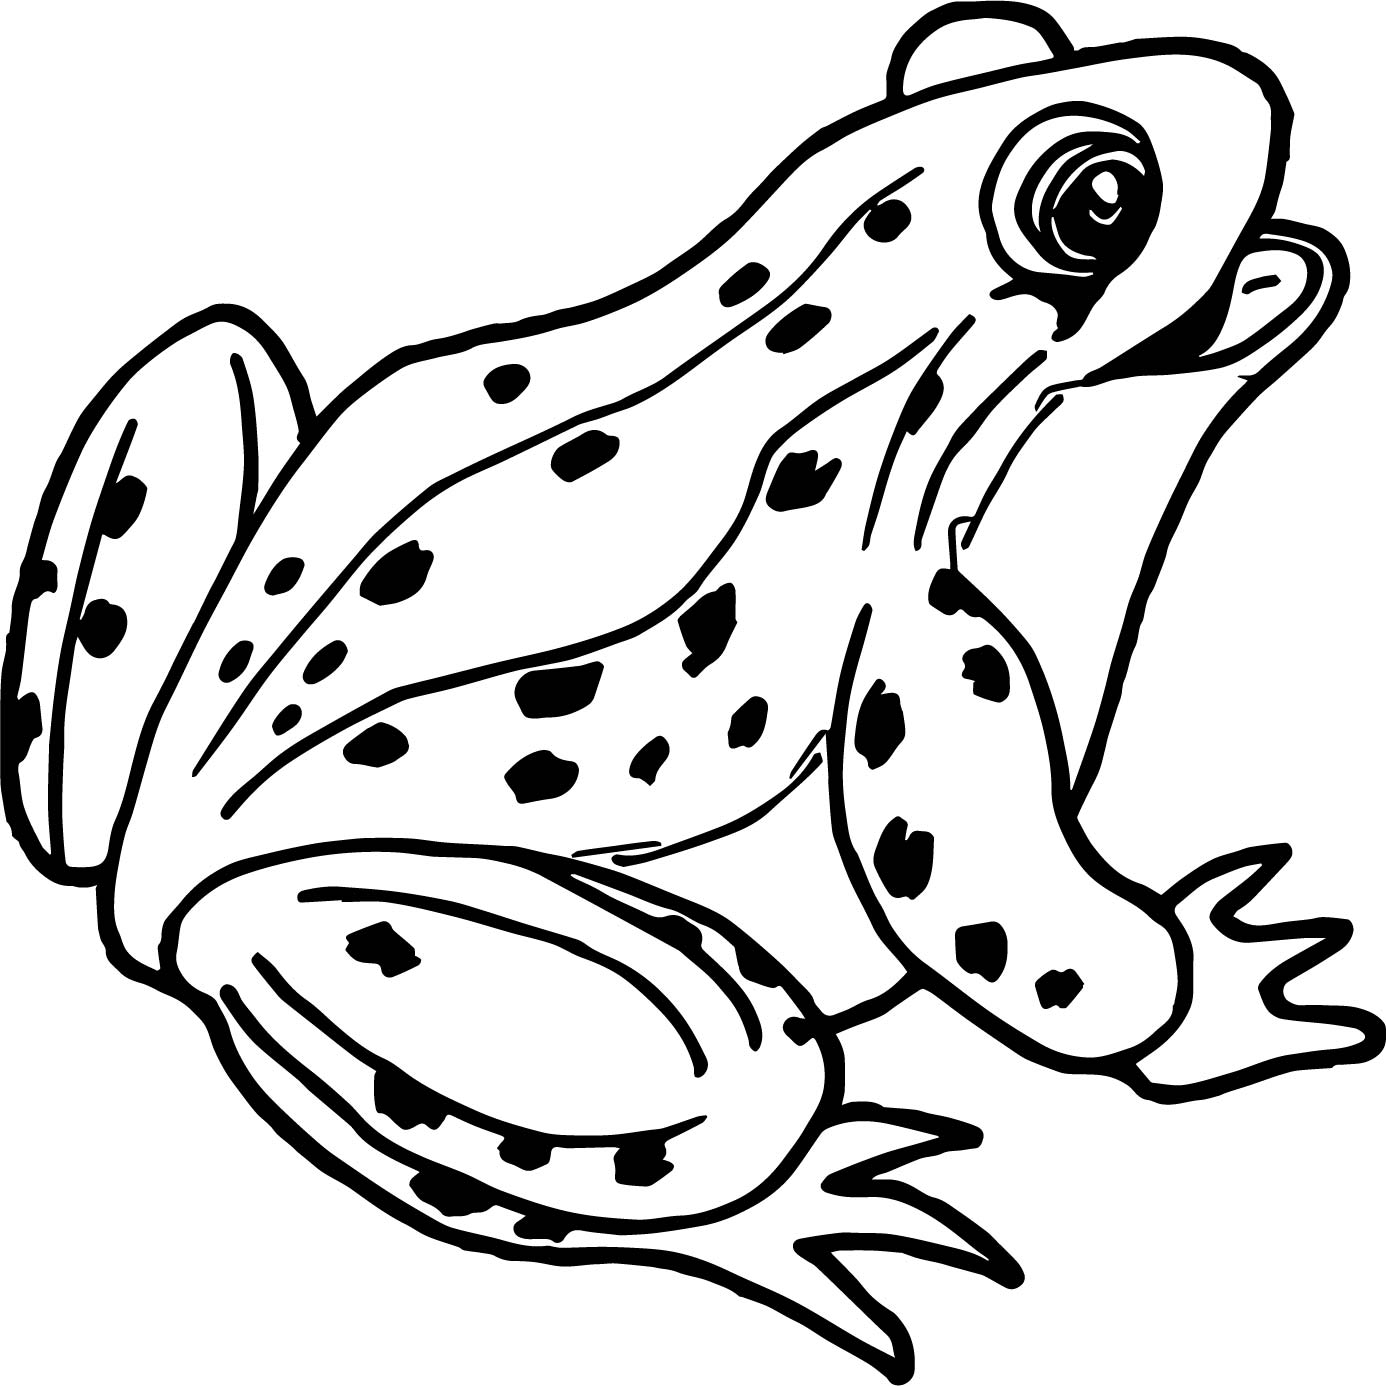 coloring book picture of a frog frogs to color for children frogs kids coloring pages of frog picture a book coloring